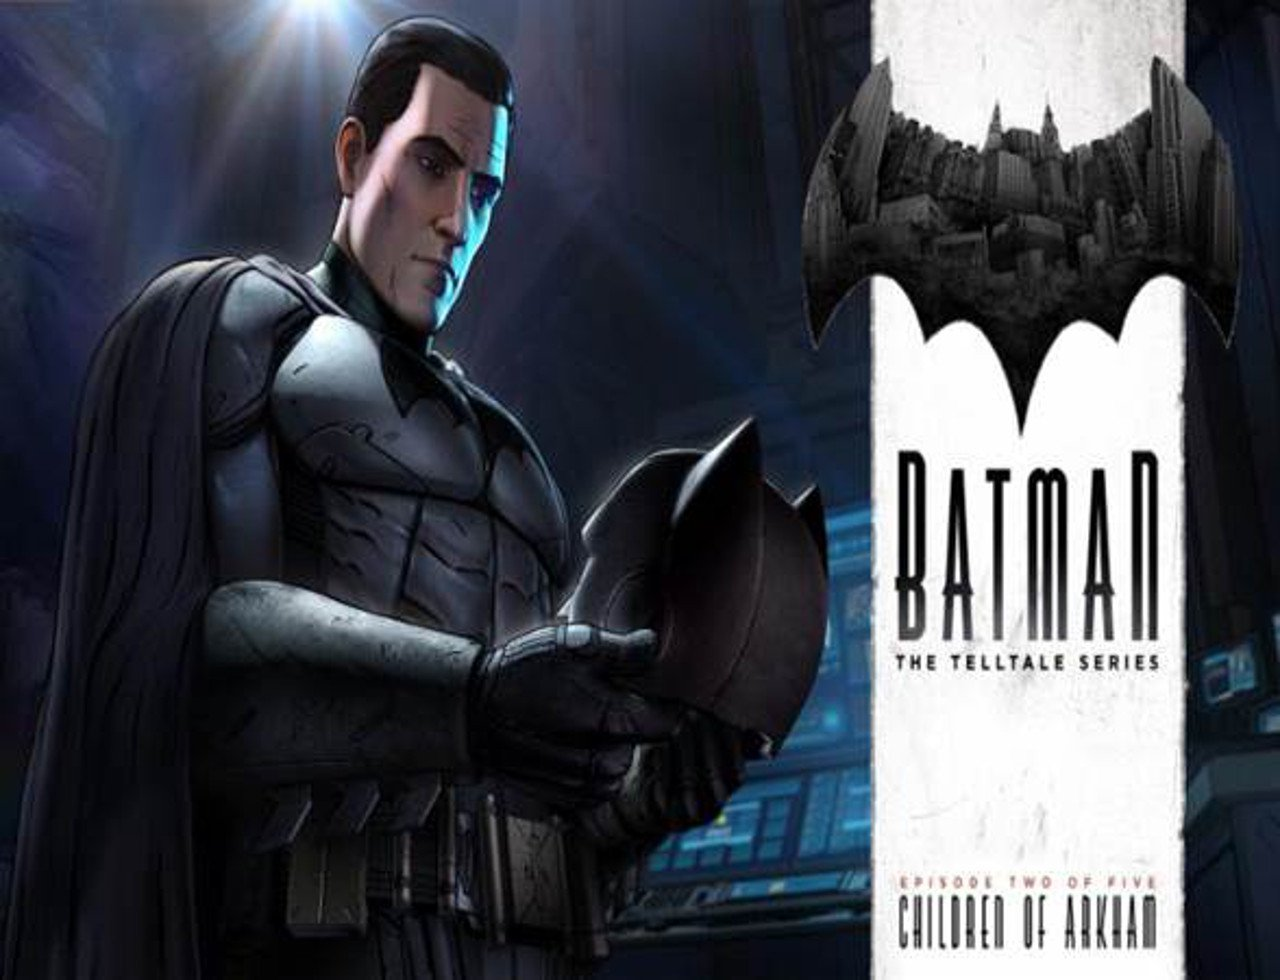 Batman The Telltale Series: annunciata la data del secondo episodio